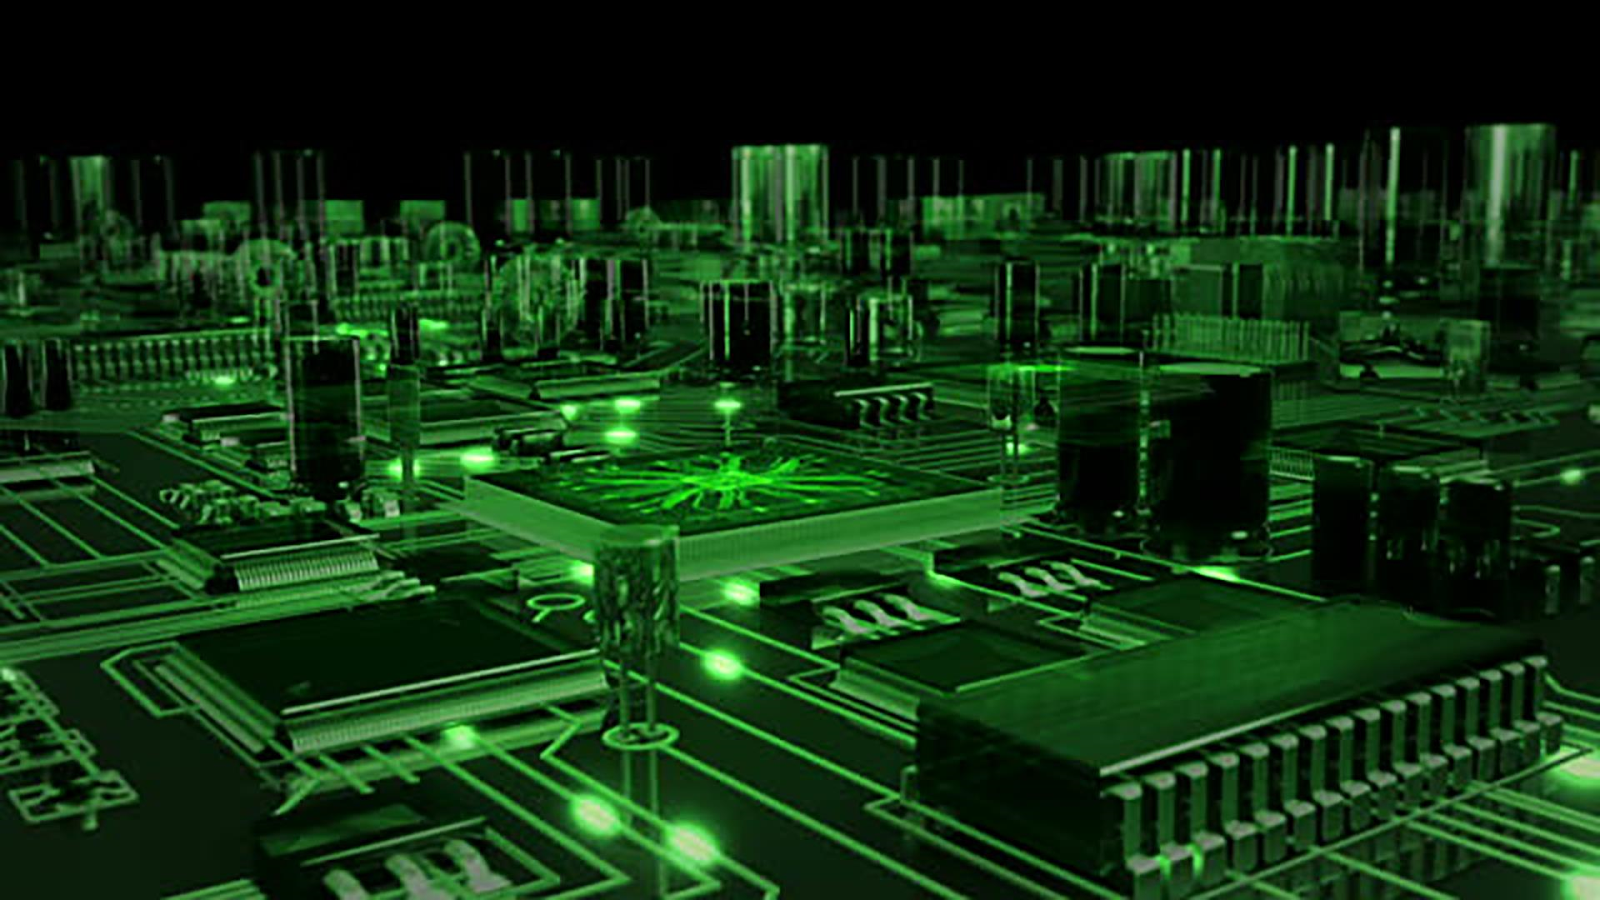 Free Download Circuit Board Wallpaper Collection 50 1600x900 For